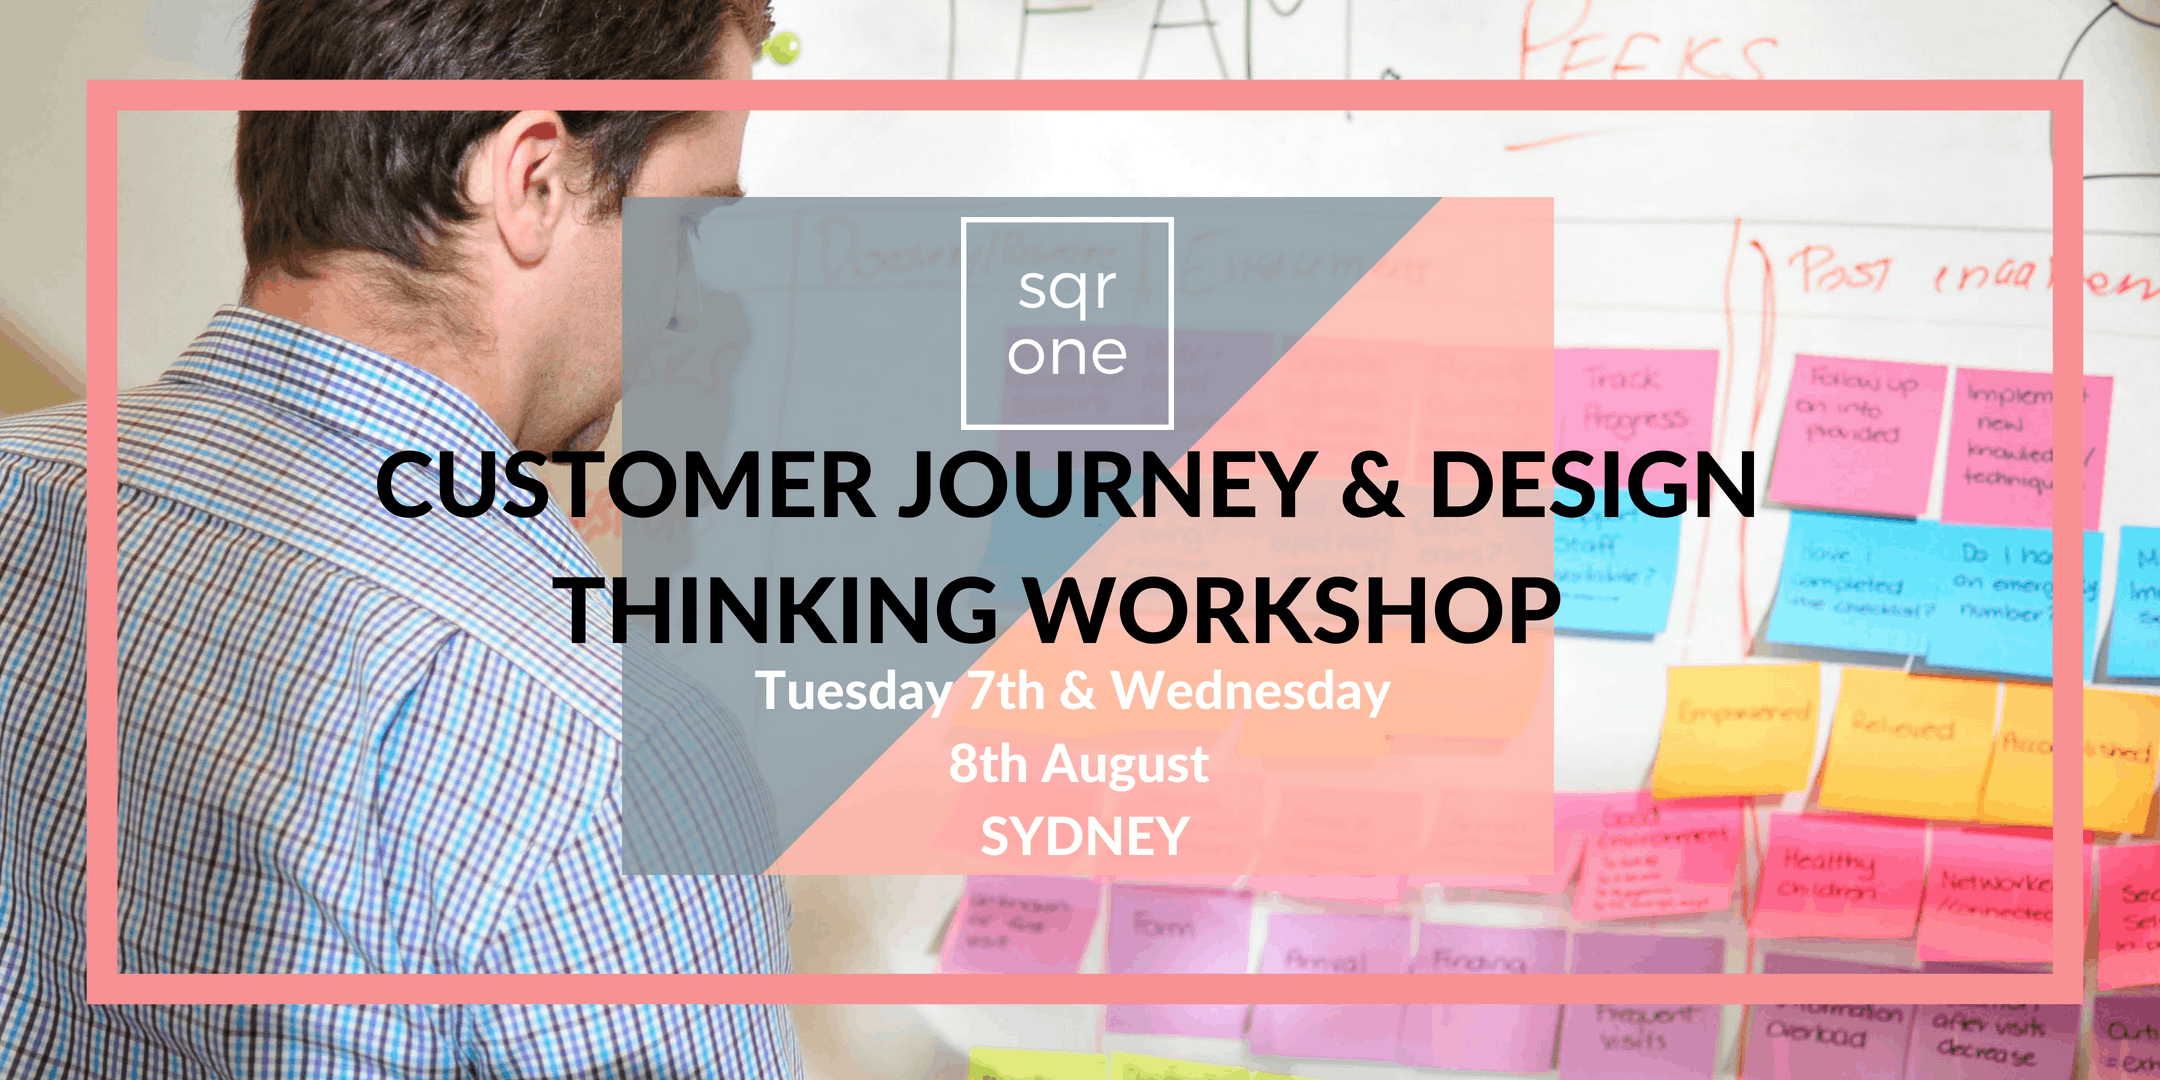 CUSTOMER JOURNEY MAPPING AND DESIGN THINKING WORKSHOP SYDNEY - Customer journey mapping workshop